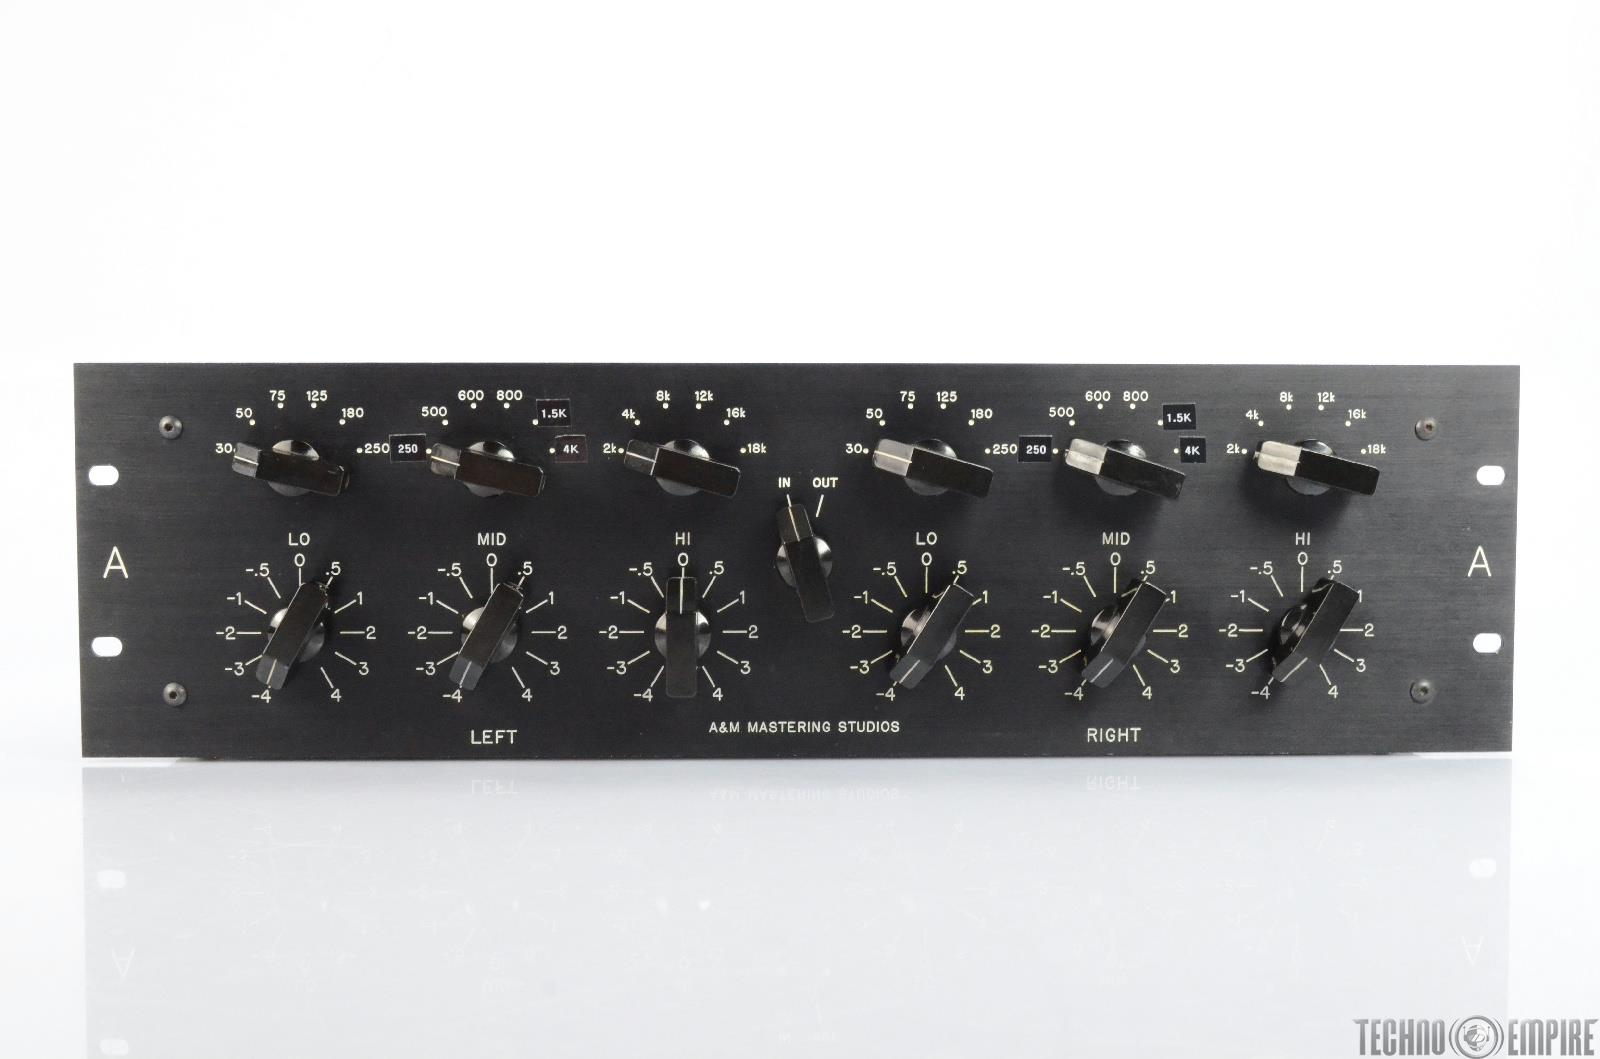 A&M Mastering Studios 3-Band Stereo Parametric Equalizer EQ w/ Pultec #25735